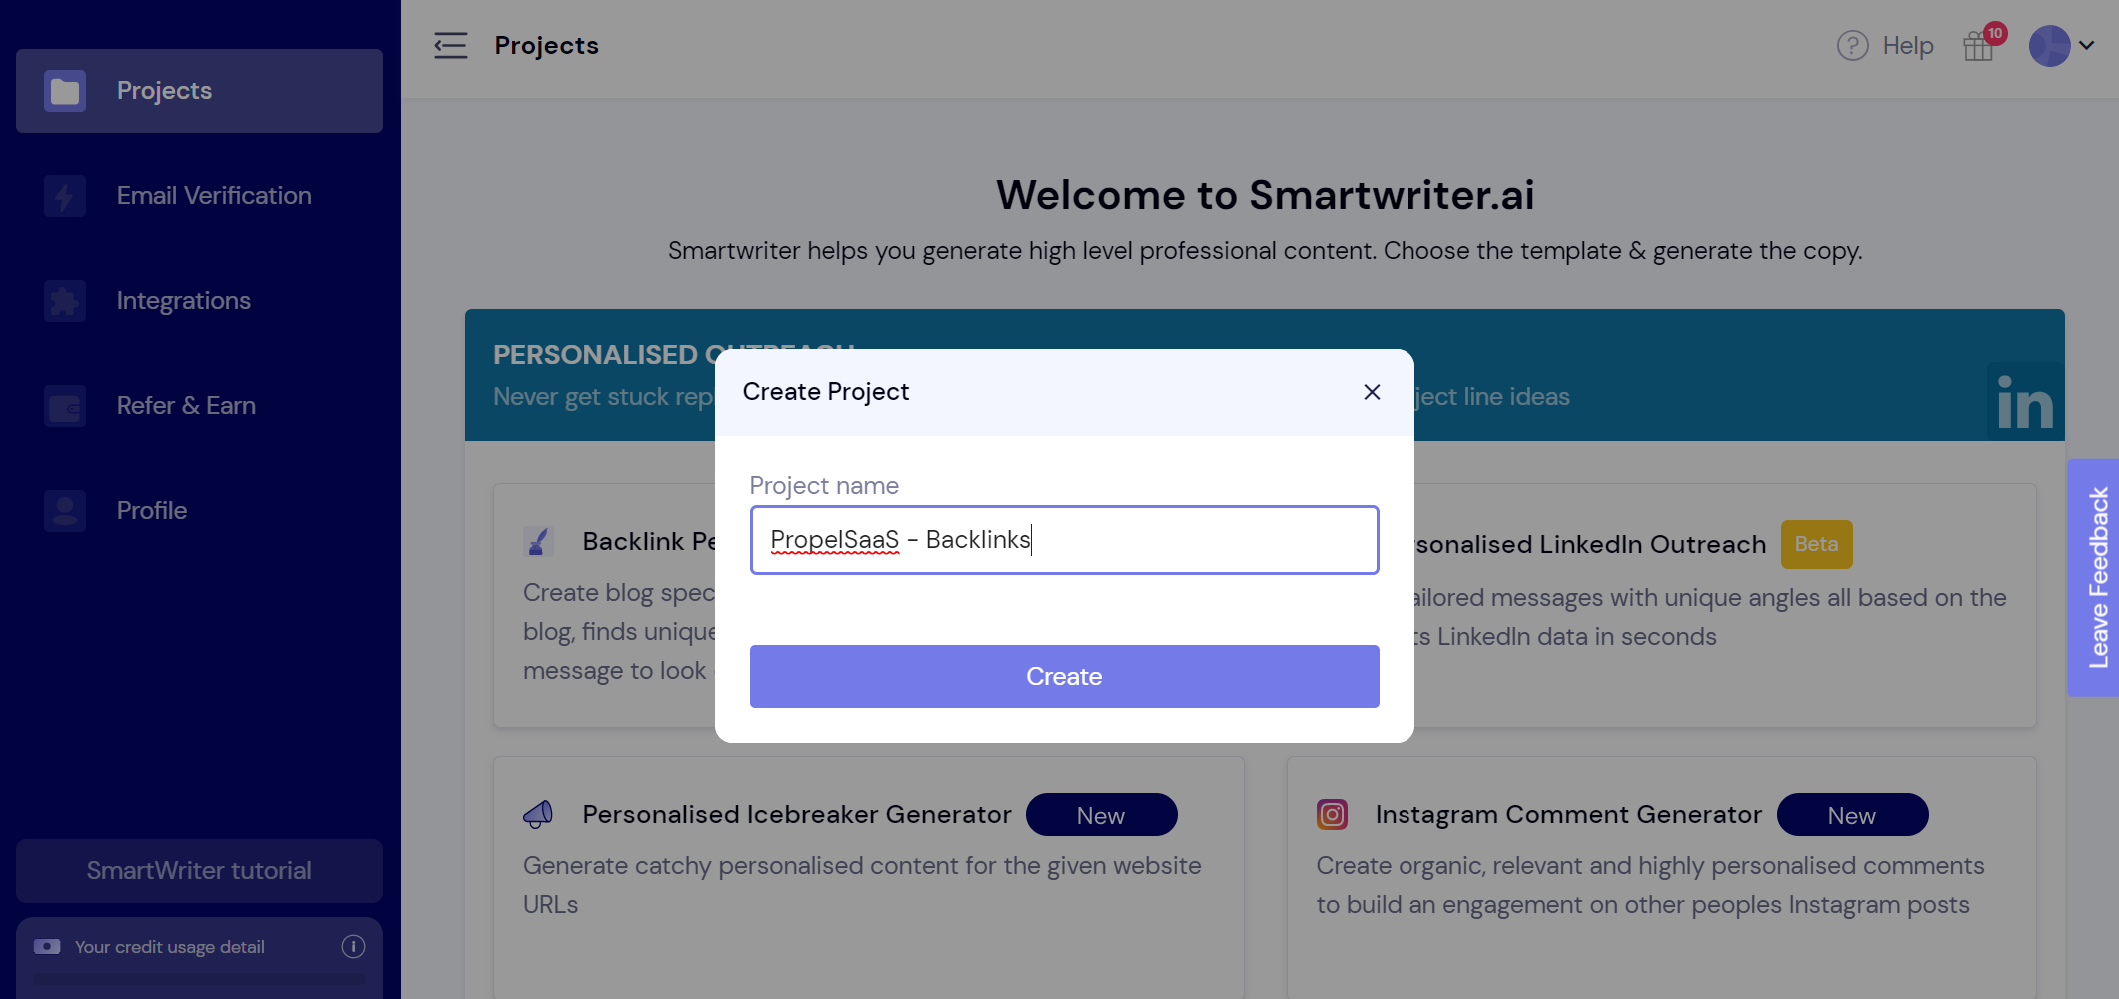 SmartWriter - Projects